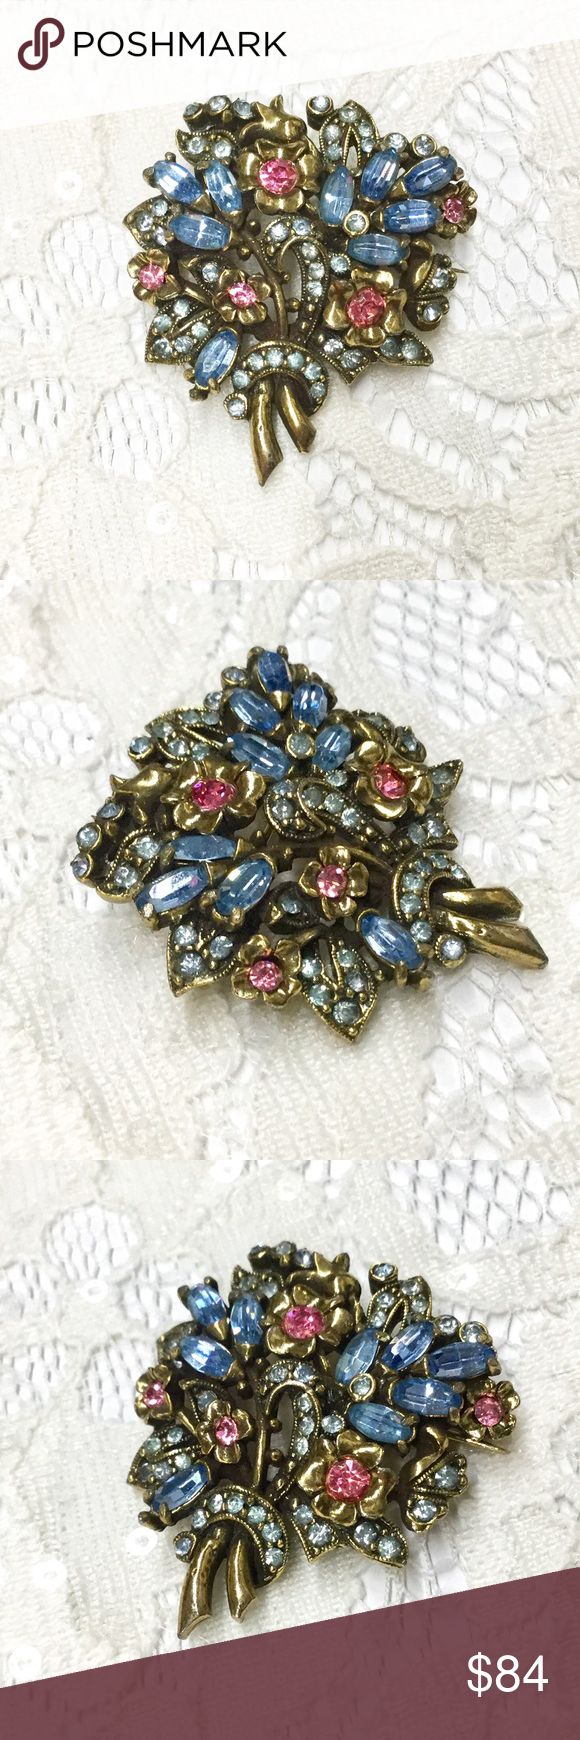 Vintage Hollycraft Pastel Floral Bouquet Brooch Vintage signed Hollycraft COPR 1950 floral bouquet brooch.  Pastel pink and blue rhinestones in a soft gold tone setting.  Very dreamy romantic! Hollycraft Jewelry Brooches